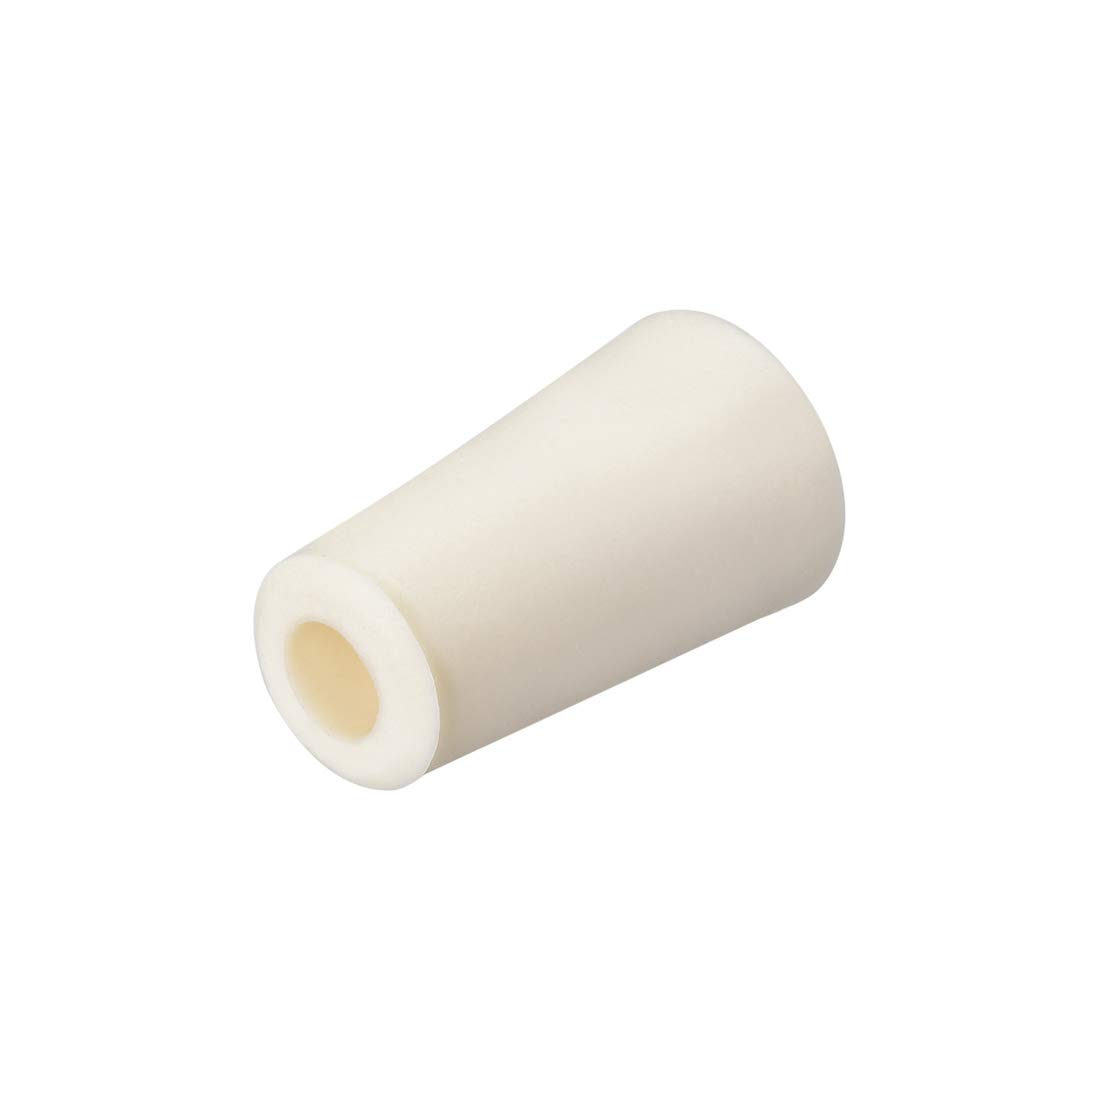 uxcell 17-22mm Beige Drilled Silicone Stopper Plugs for Flask Test Tube Stopper 2pcs